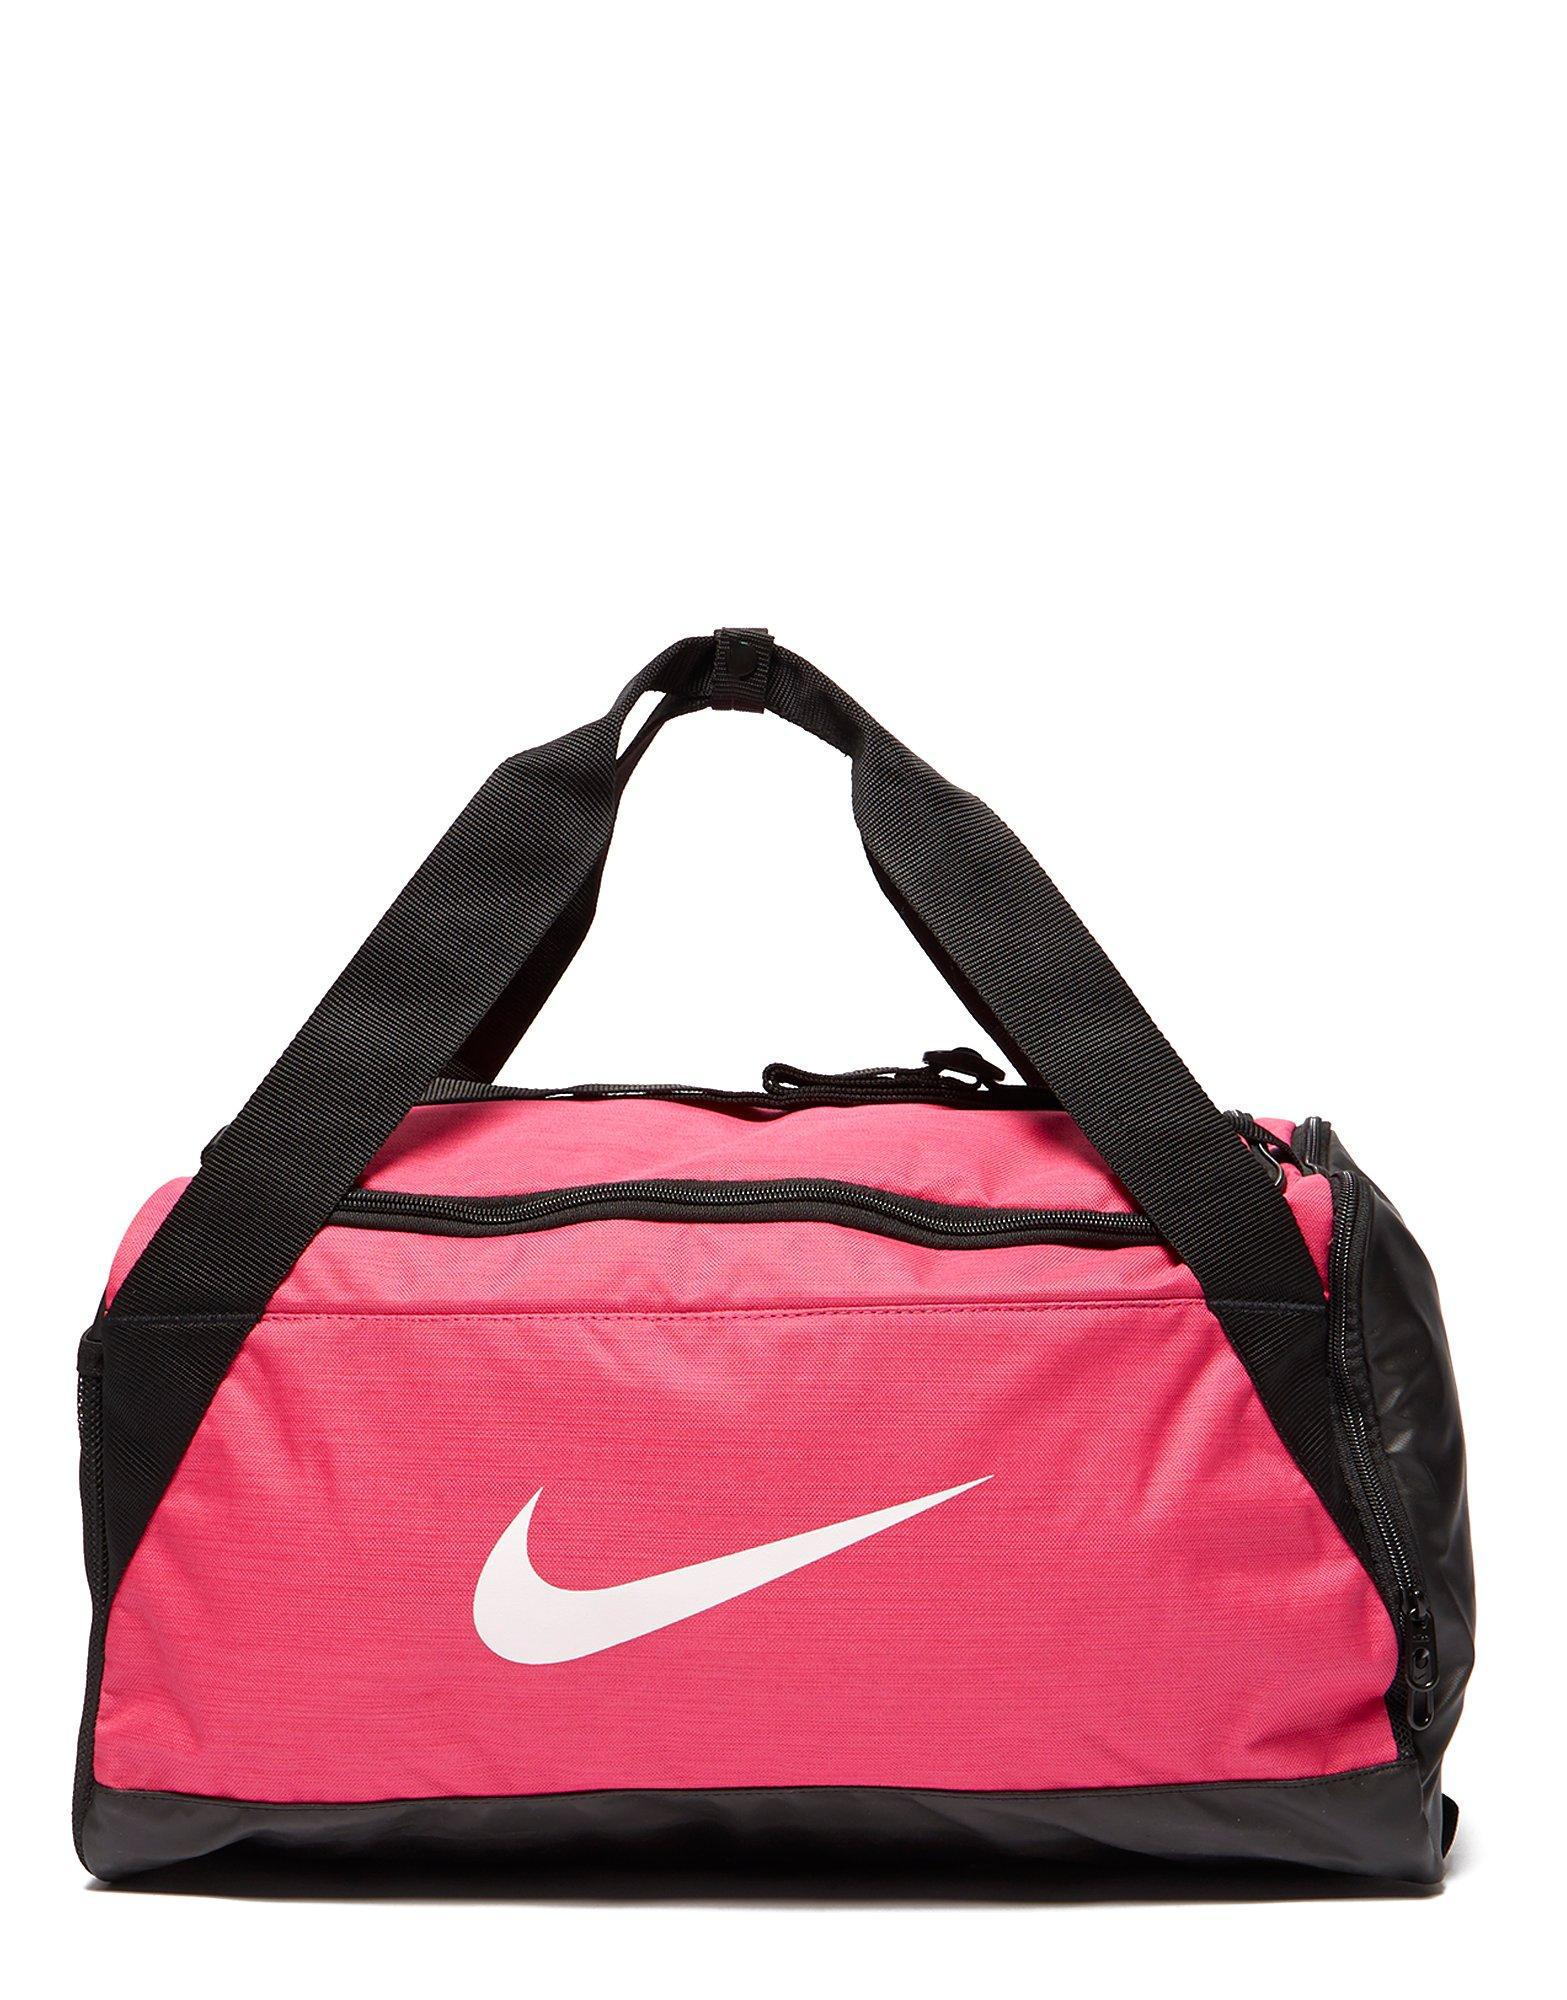 Lyst - Nike Brasilia Small Duffle Bag in Pink 582c48831a762